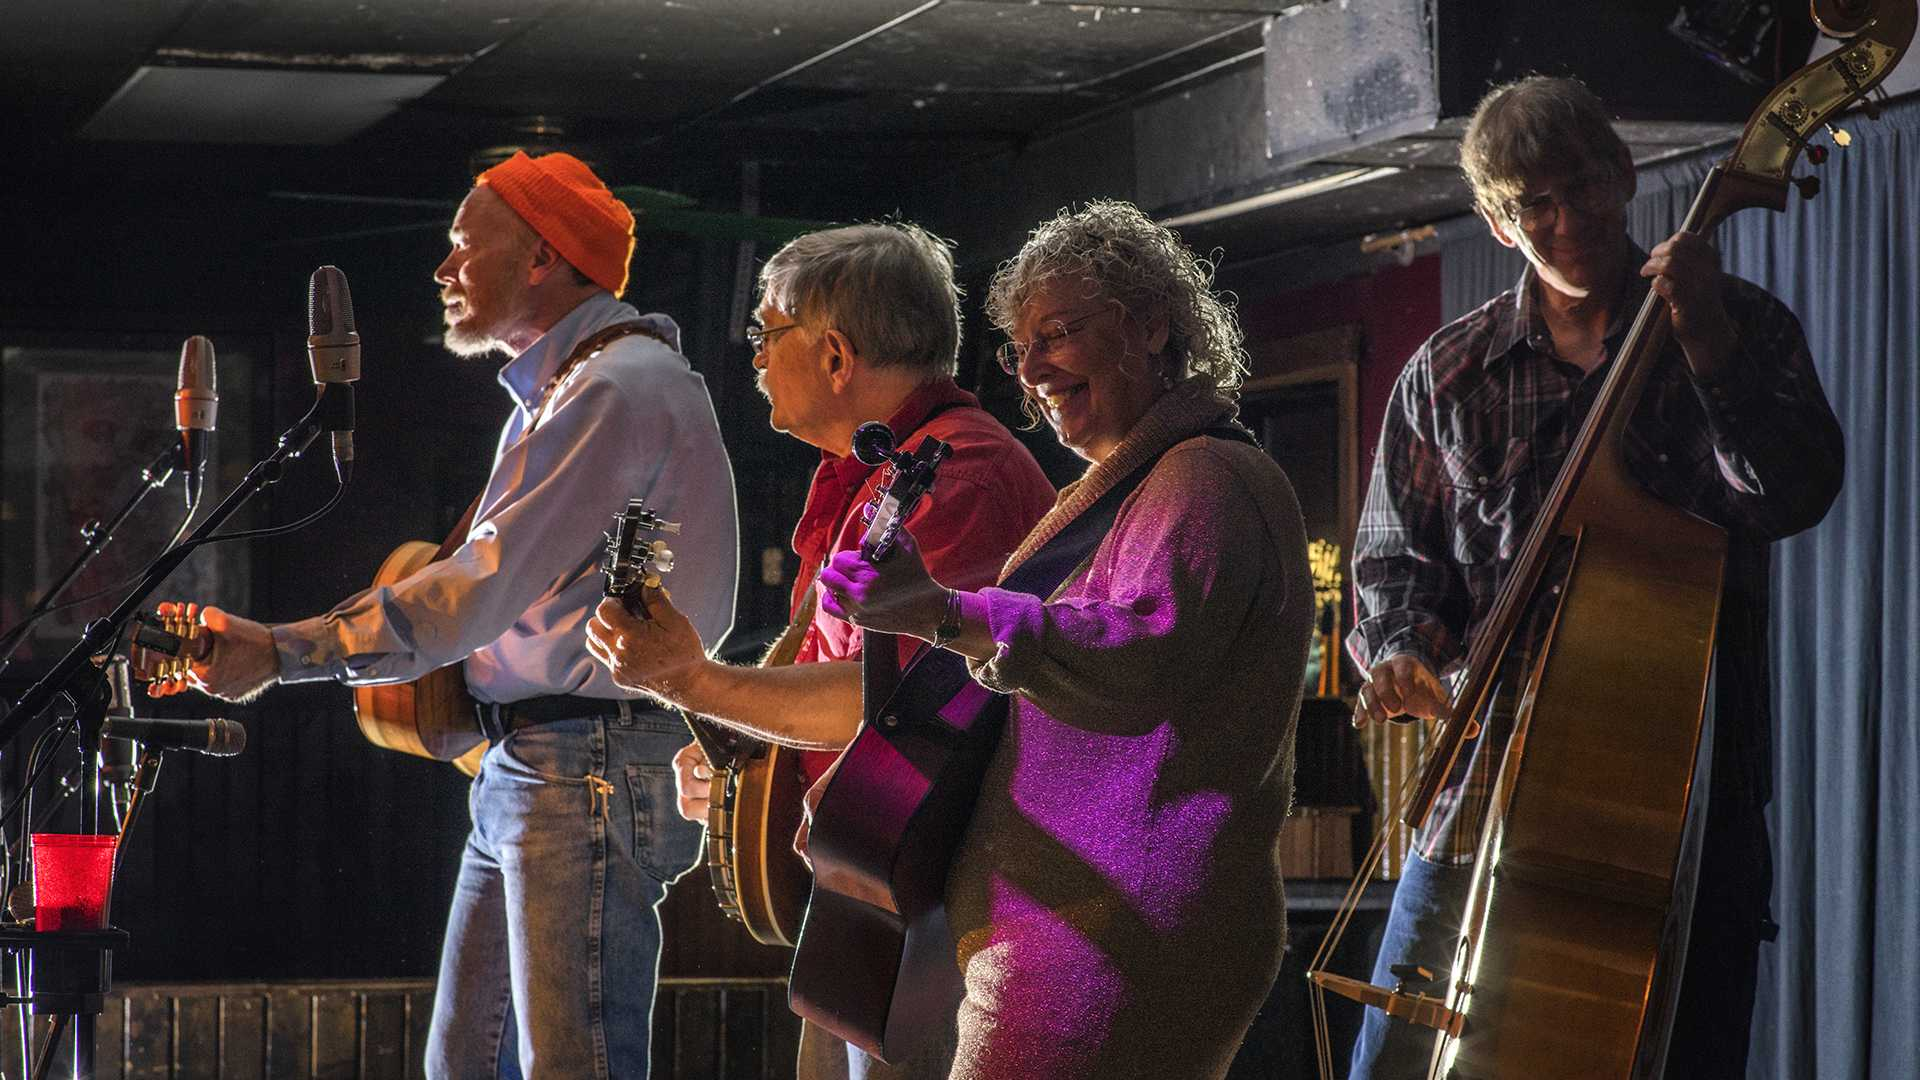 The bluegrass group, BandJoy, performs their setlist at The Mill on Wednesday, Dec. 6, 2017.      The bandmembers frequently switched between backup and lead singing throughout their performance. (James Year/The Daily Iowan)